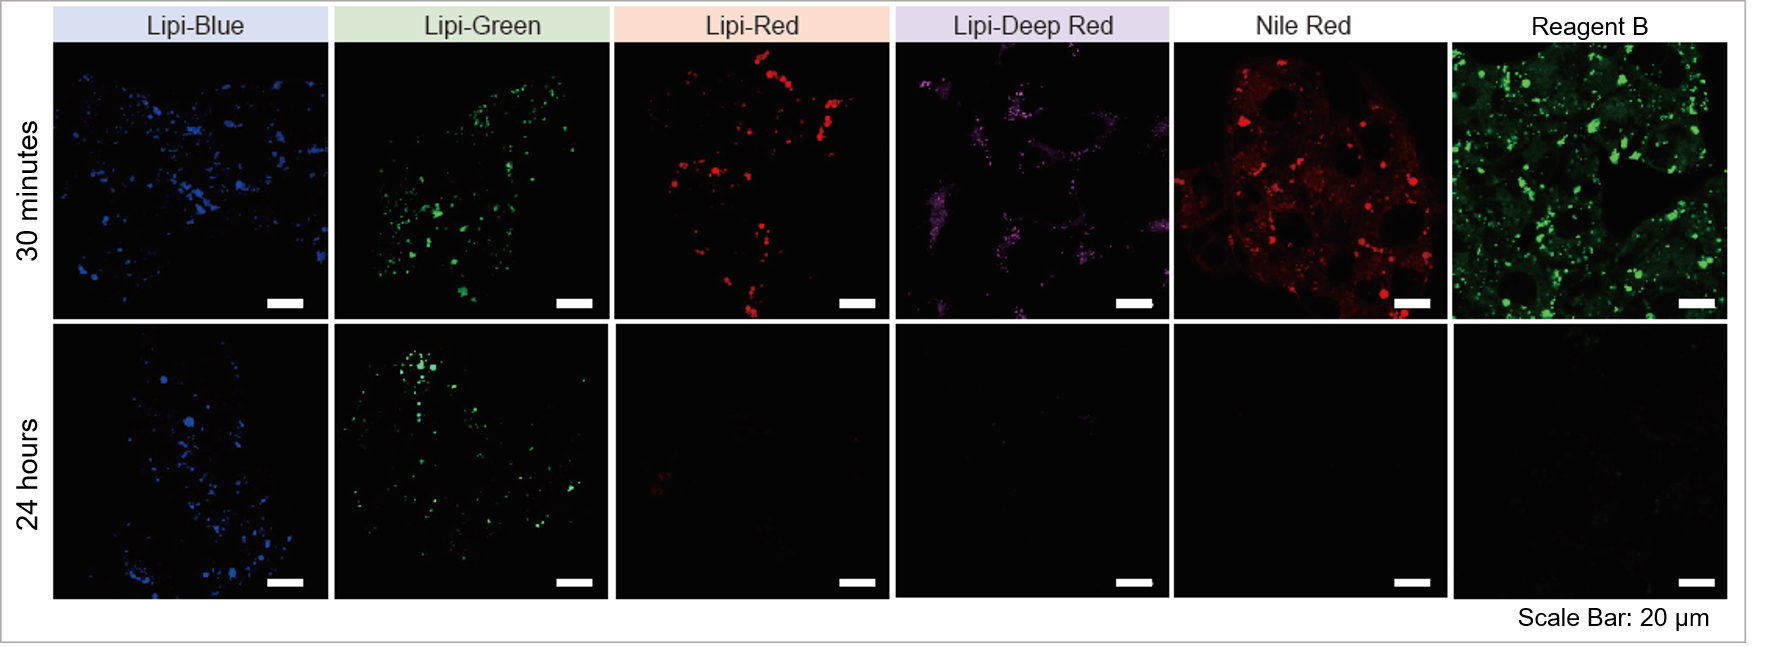 High Intracellular Retentivity of Lipid Droplet Detection Probes